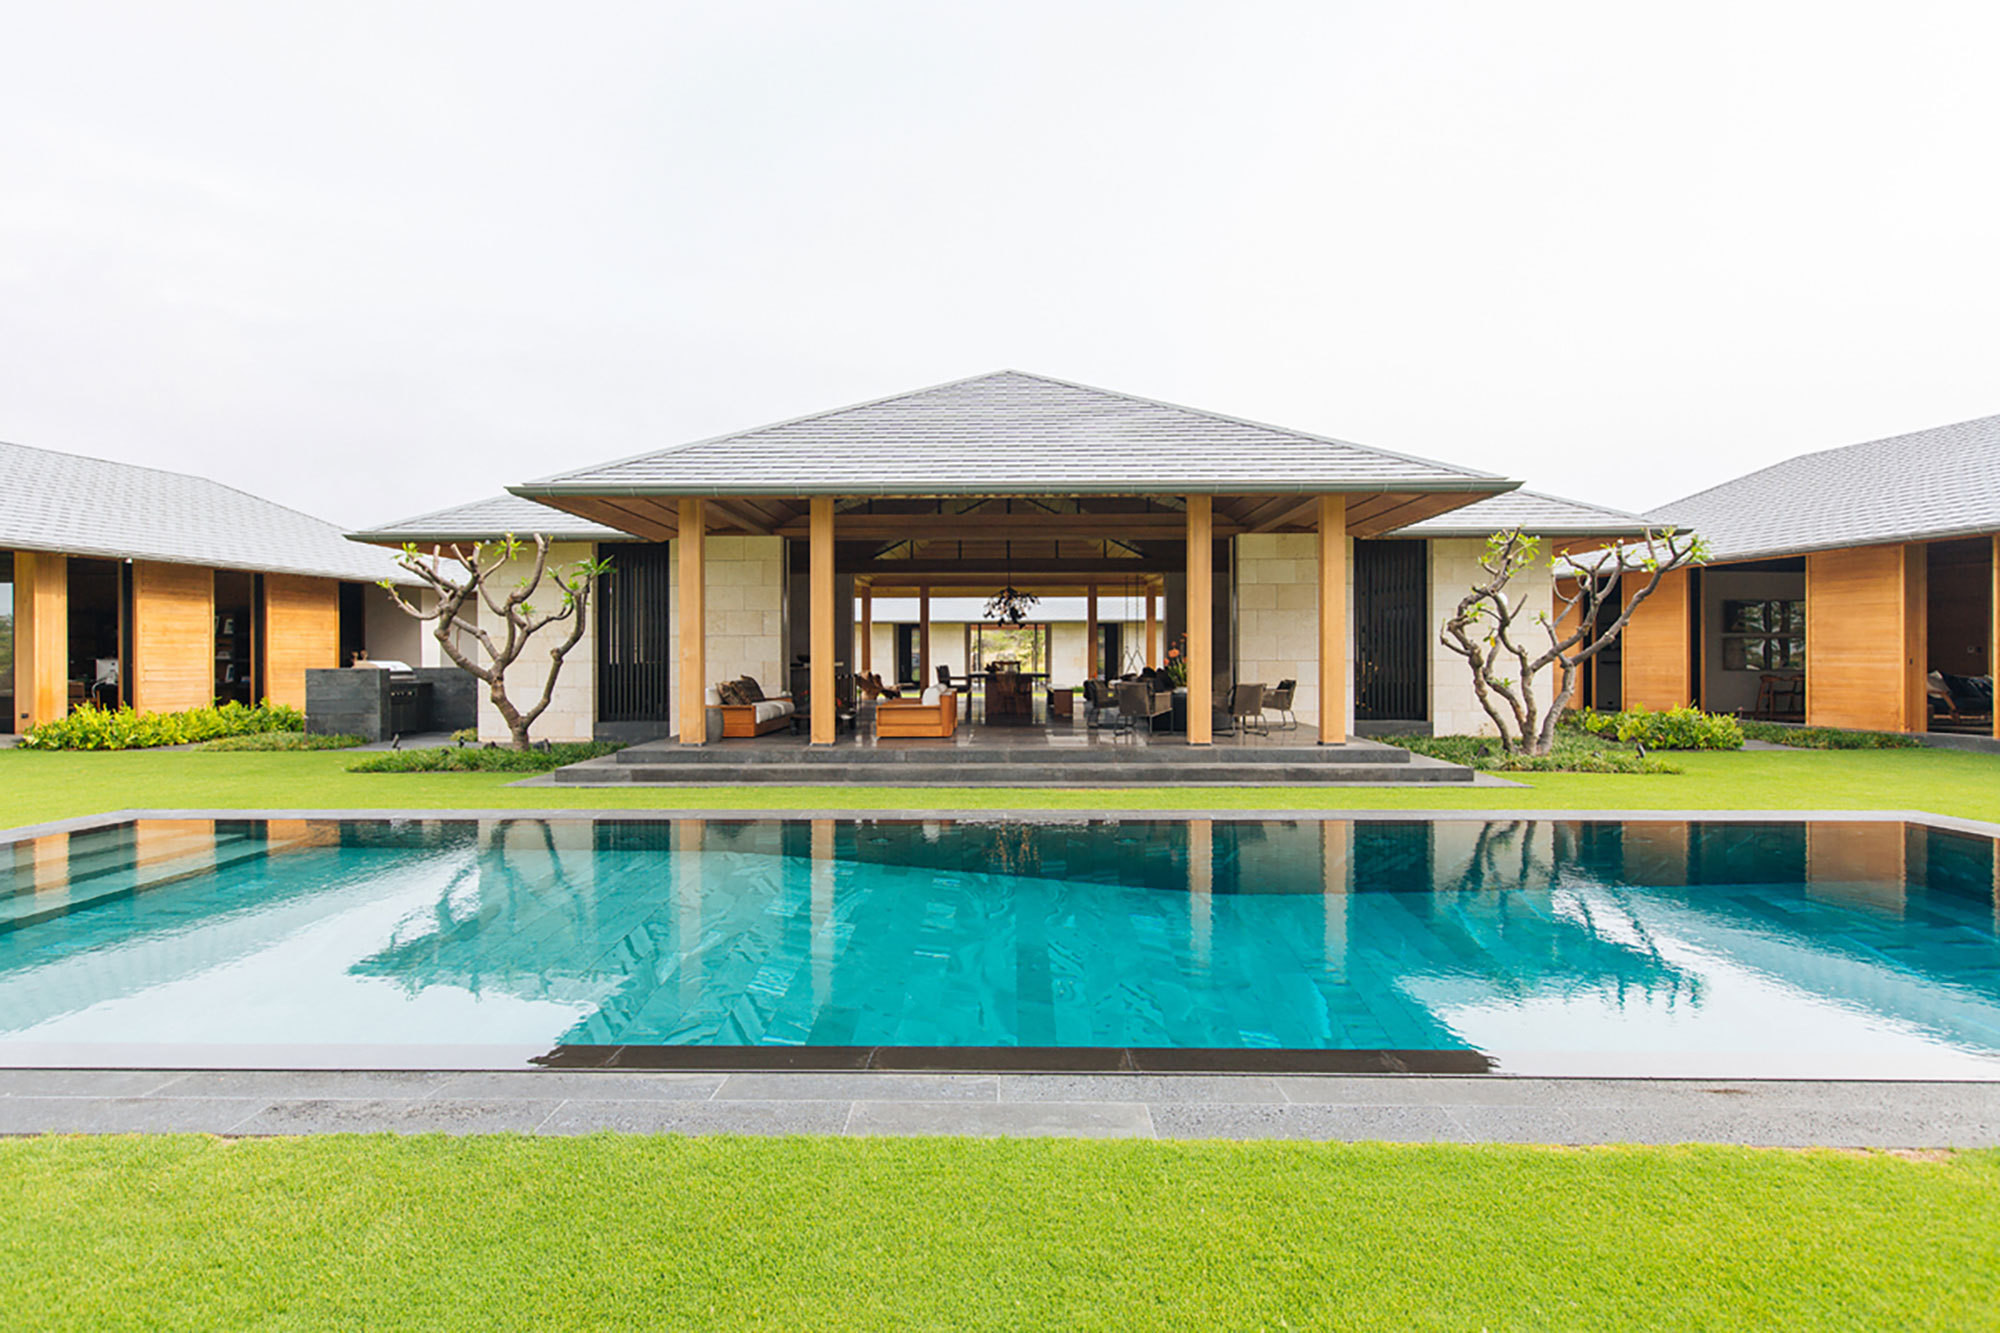 Moderne Terrassengestaltung Mit Pool Paradise Found A Minimal Modern Home In Hawaii Home Tour